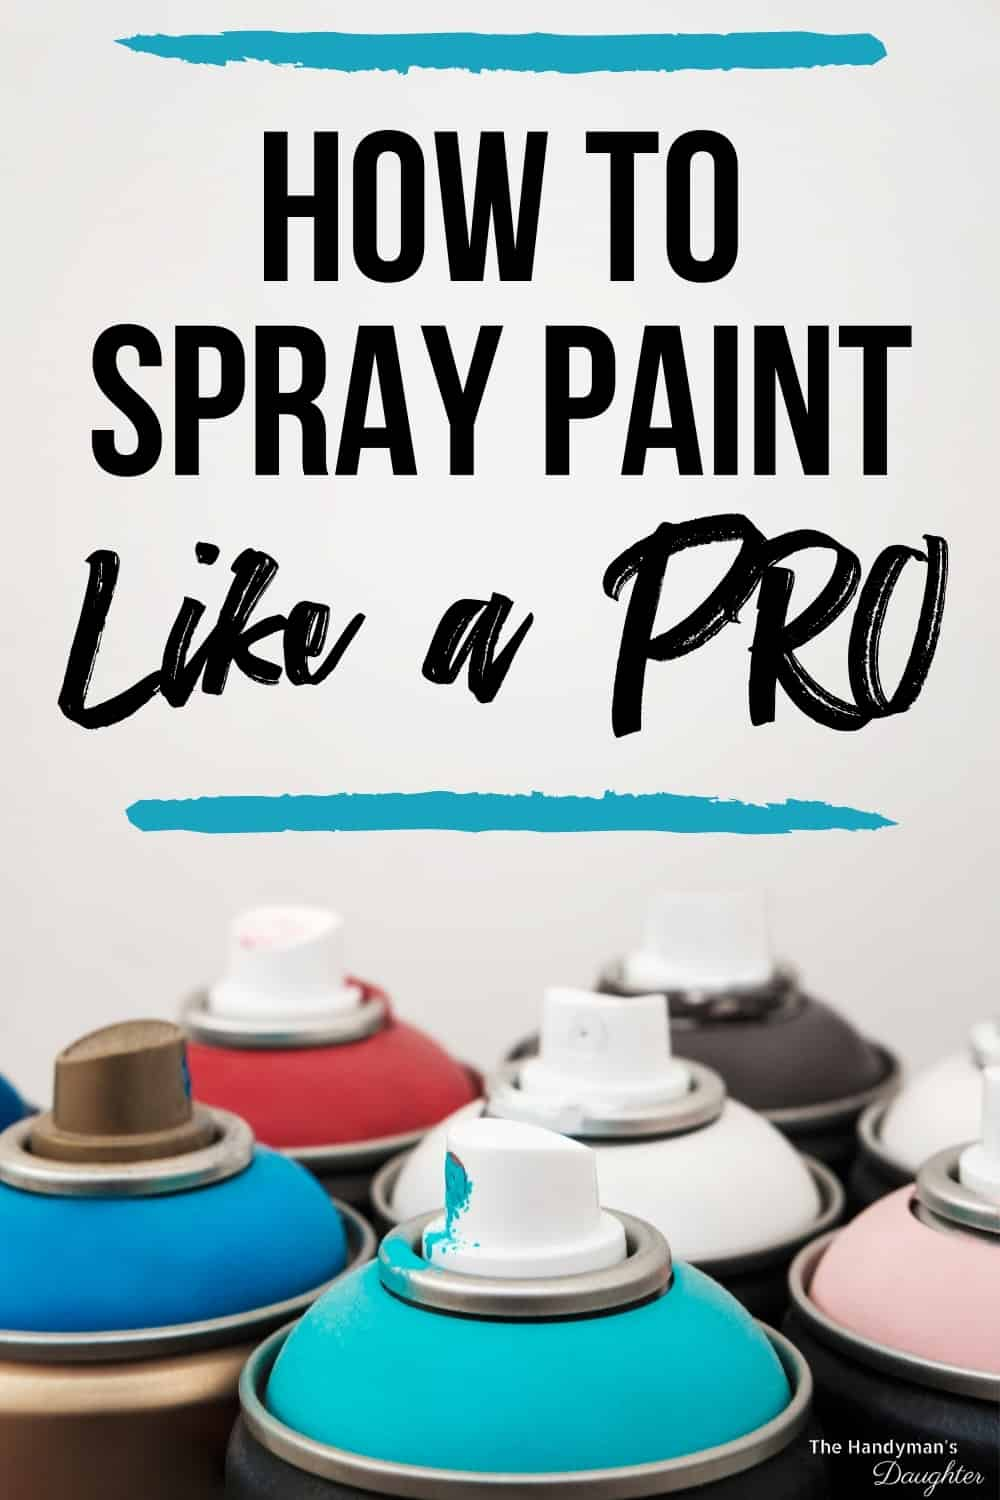 How to spray paint tips and tricks